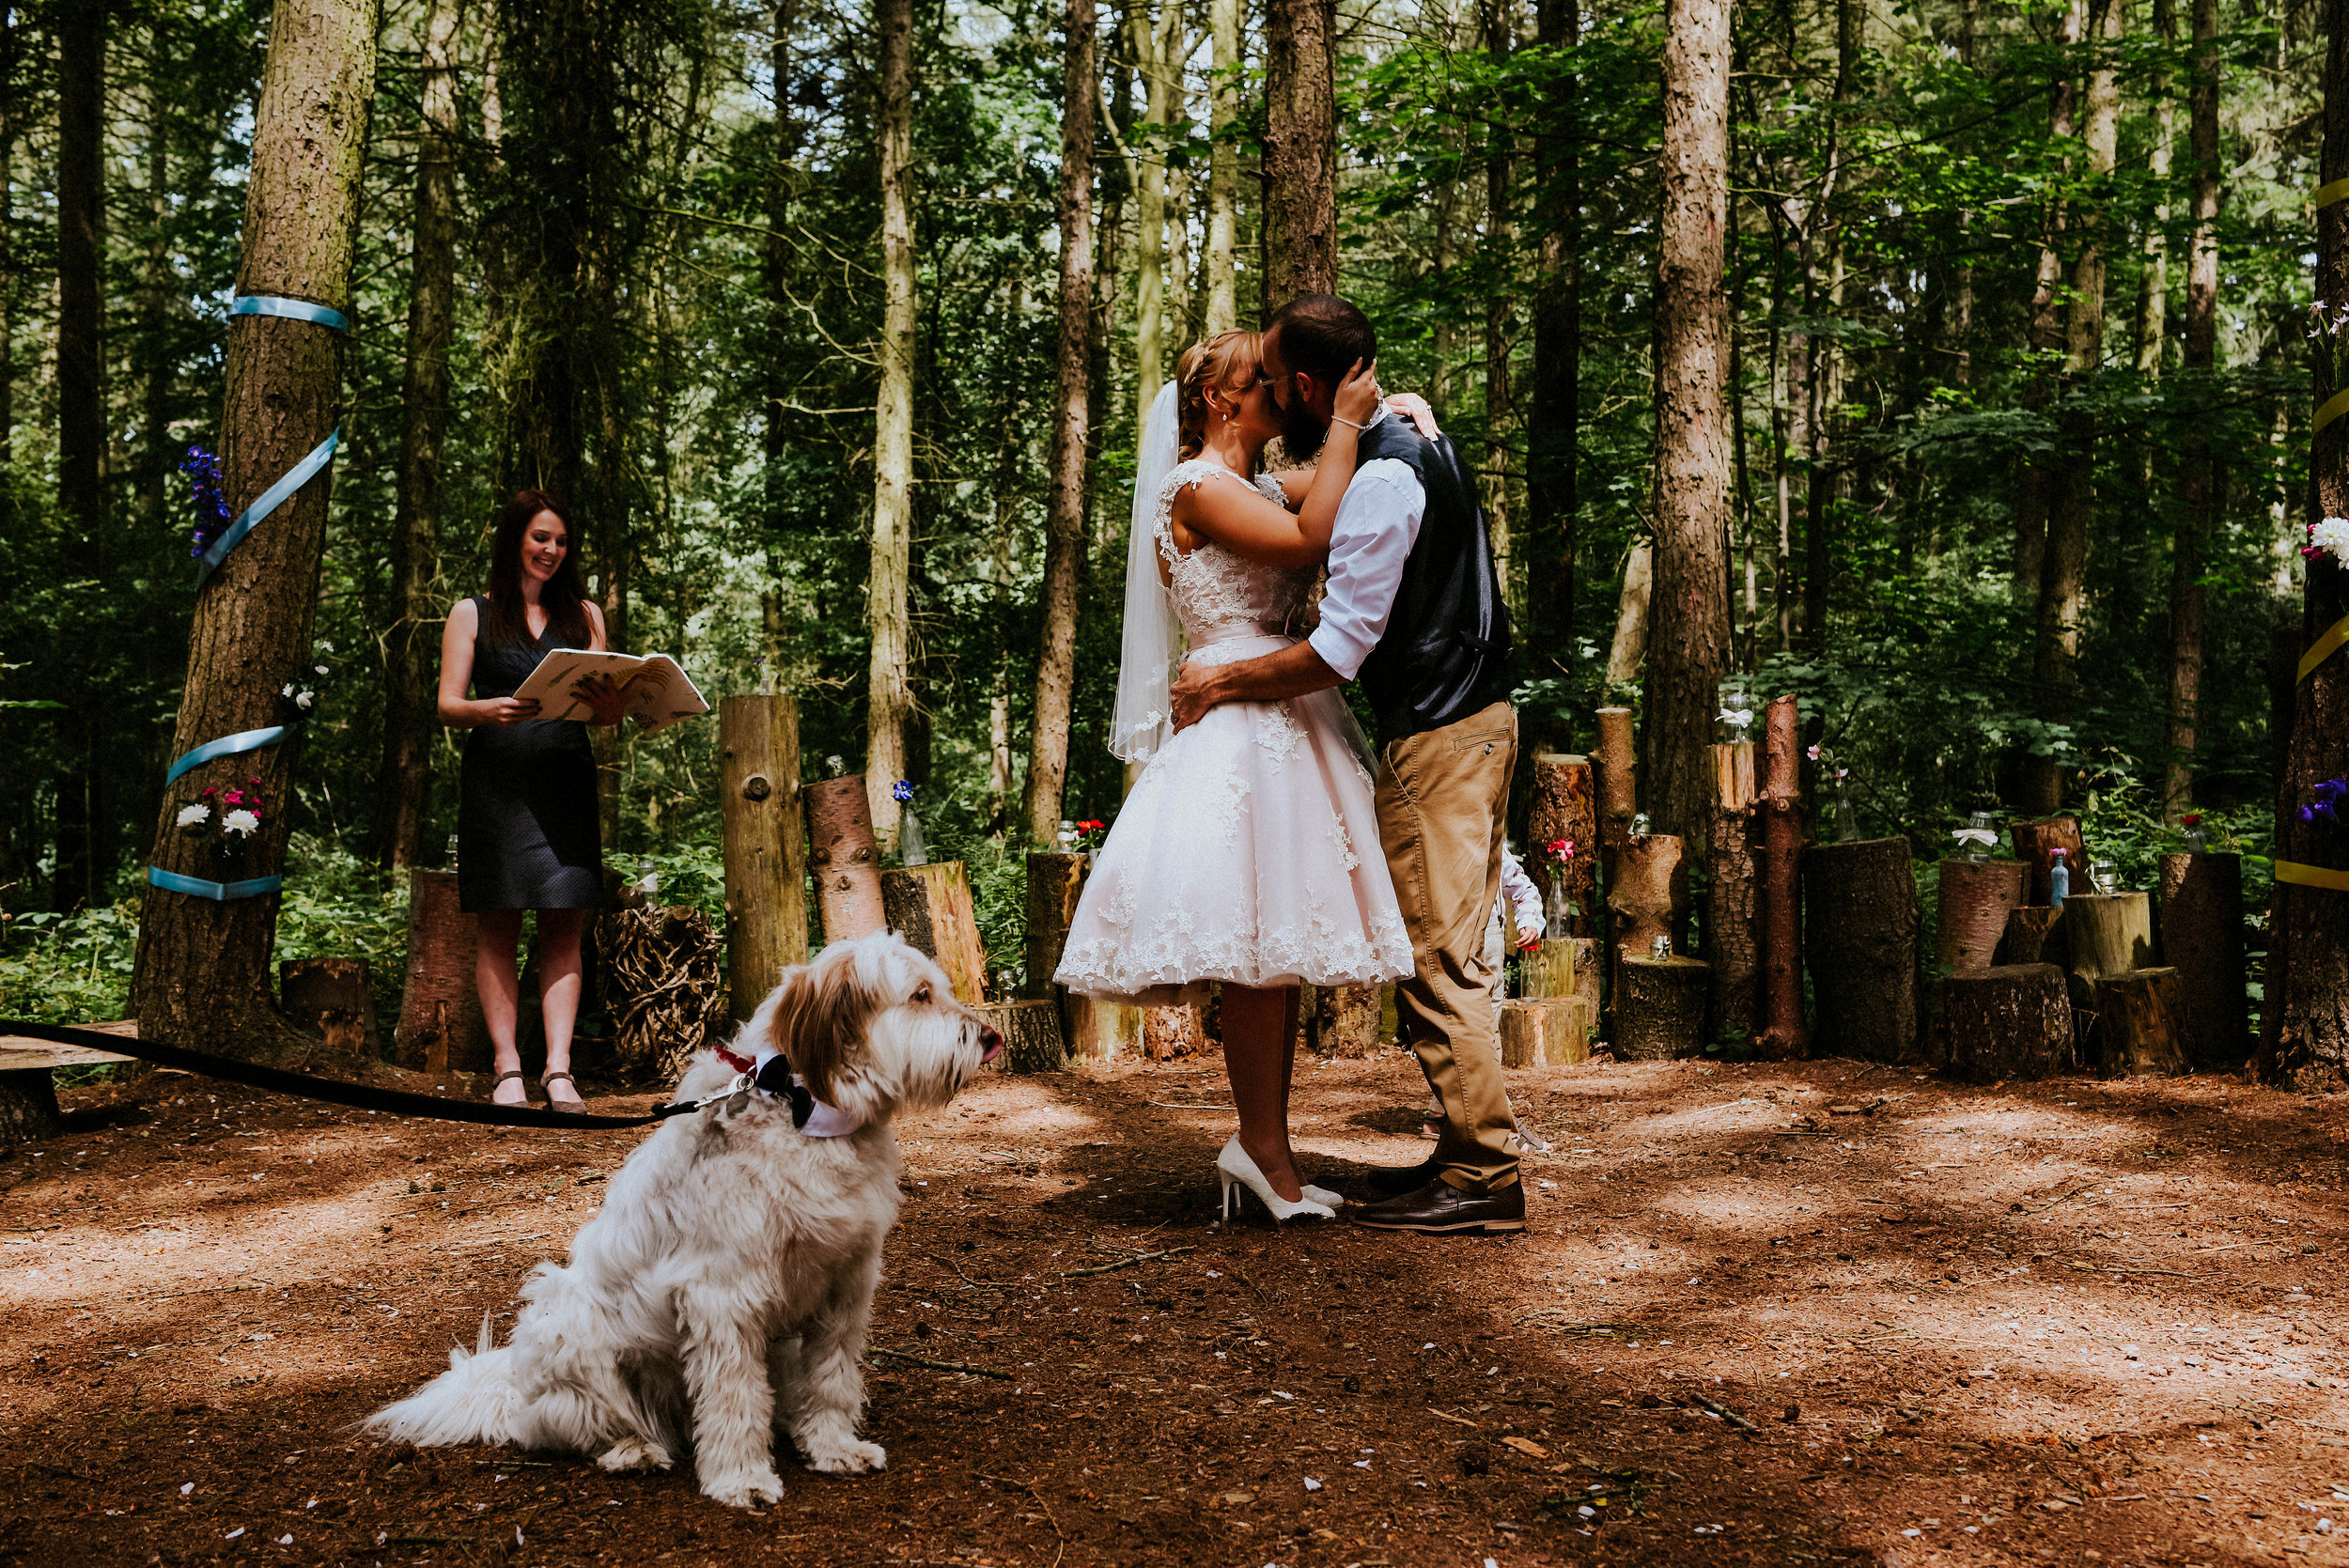 An outdoor woodland ceremony, Creative portraits amidst the Yorkshire landscape, Magical light & colourful barn details in this Camp Katur alternative wedding for Mia & John.